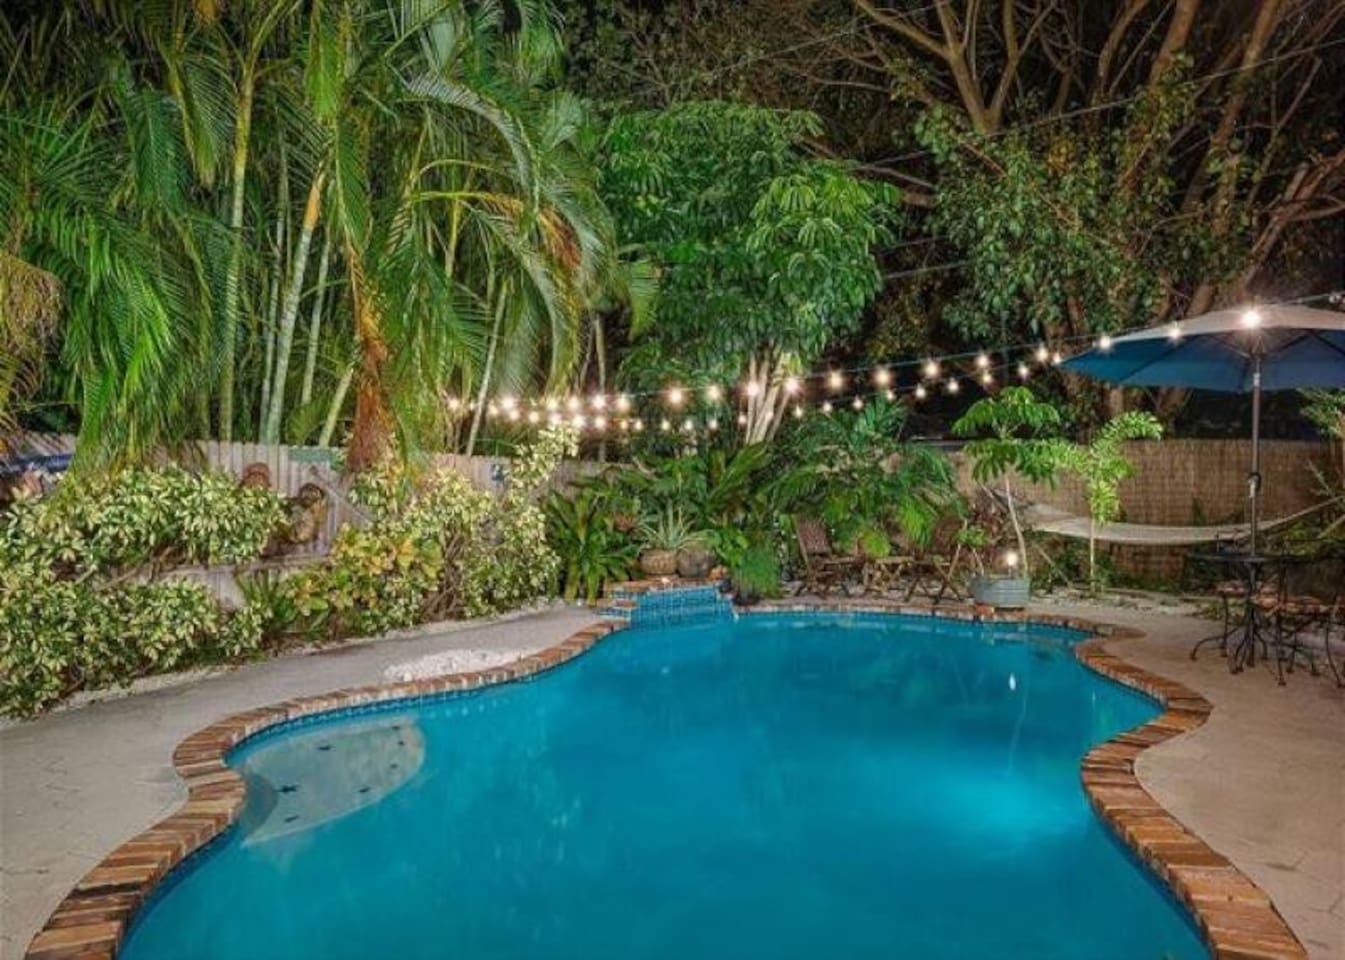 Evening Poolside offers a serene ambient effect with lighting and tropical plants surrounding the pool and sitting area.